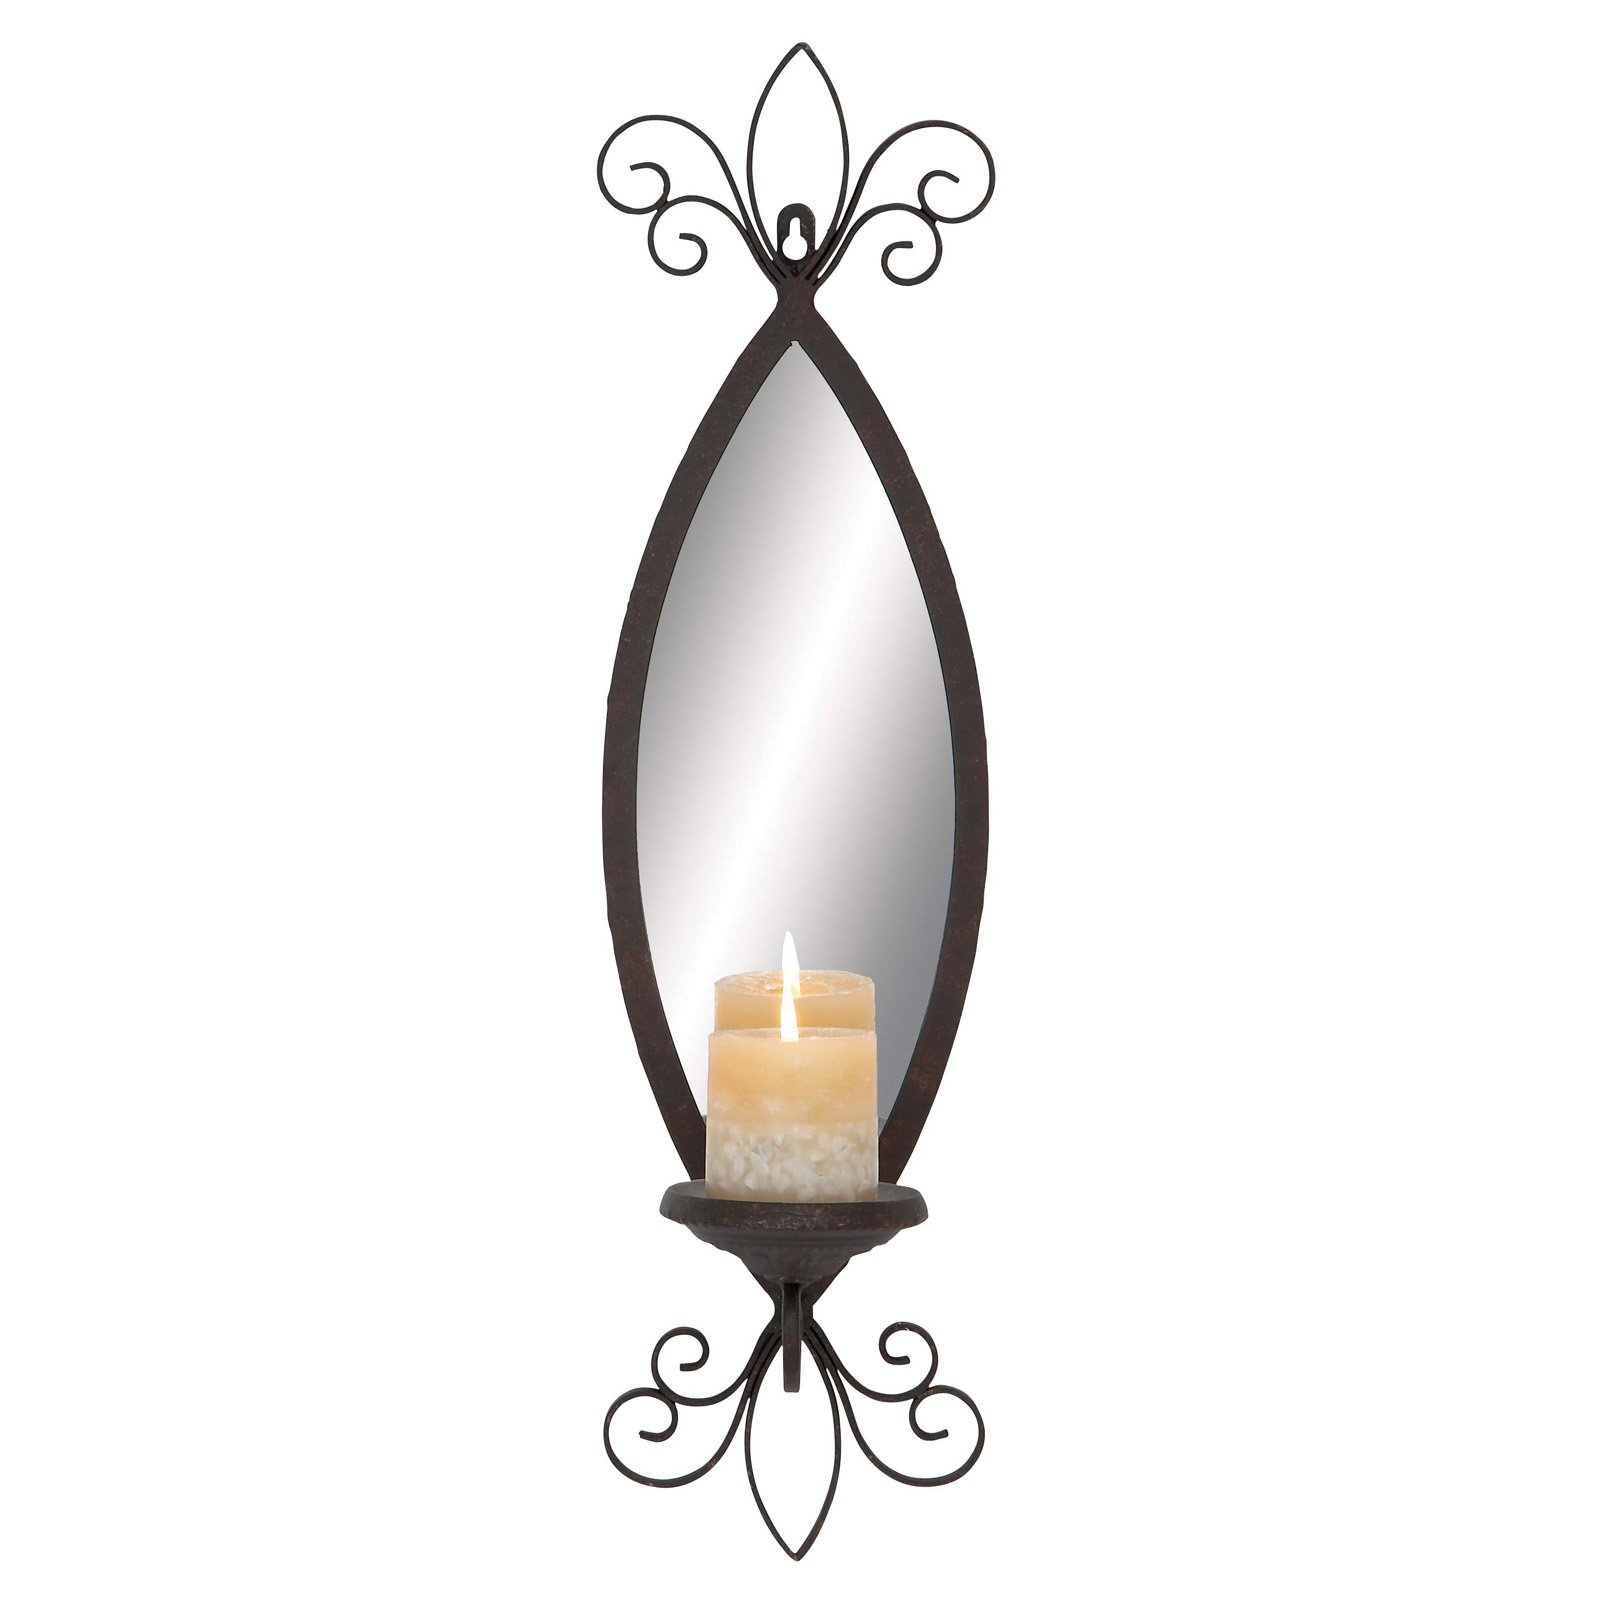 Decmode Metal Mirror Candle Sconce, Multi Color by DecMode